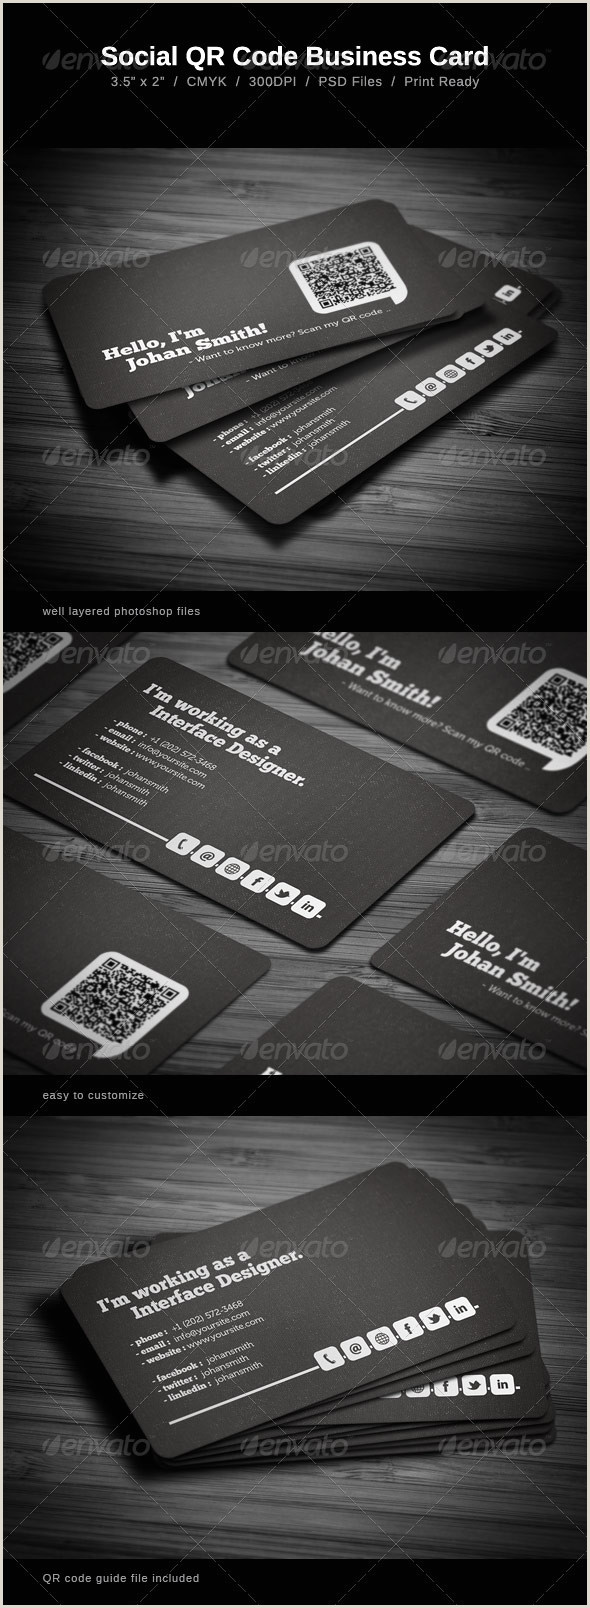 Cool Things To Put On The Back Of Your Business Card 8 Noteworthy Back Of Business Cards Ideas Design Marketing